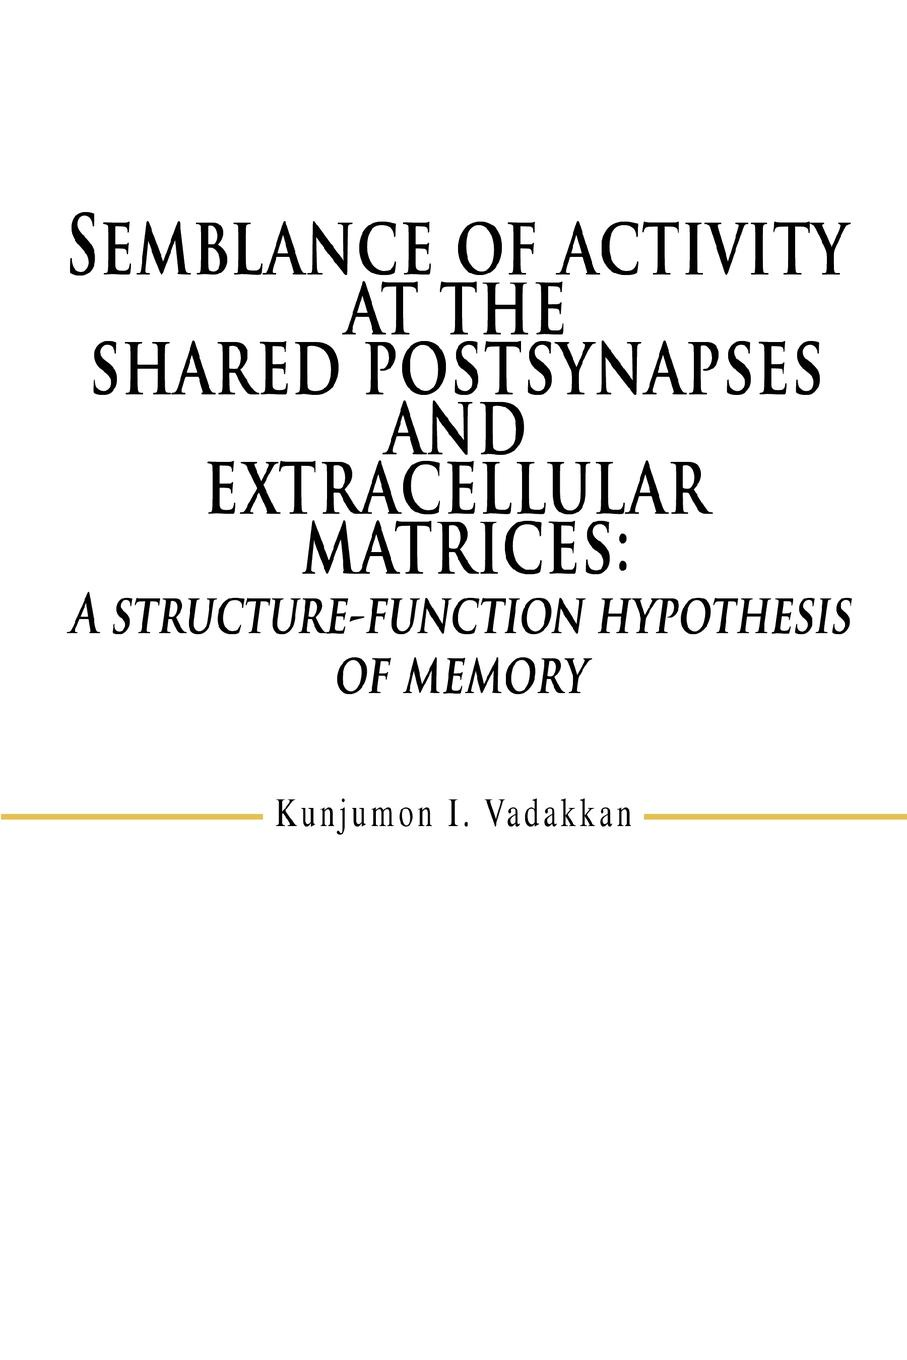 Kunjumon I Vadakkan Semblance of activity at the shared postsynapses and extracellular matrices. A structure-function hypothesis of memory chen xiaodong soft matter nanotechnology from structure to function